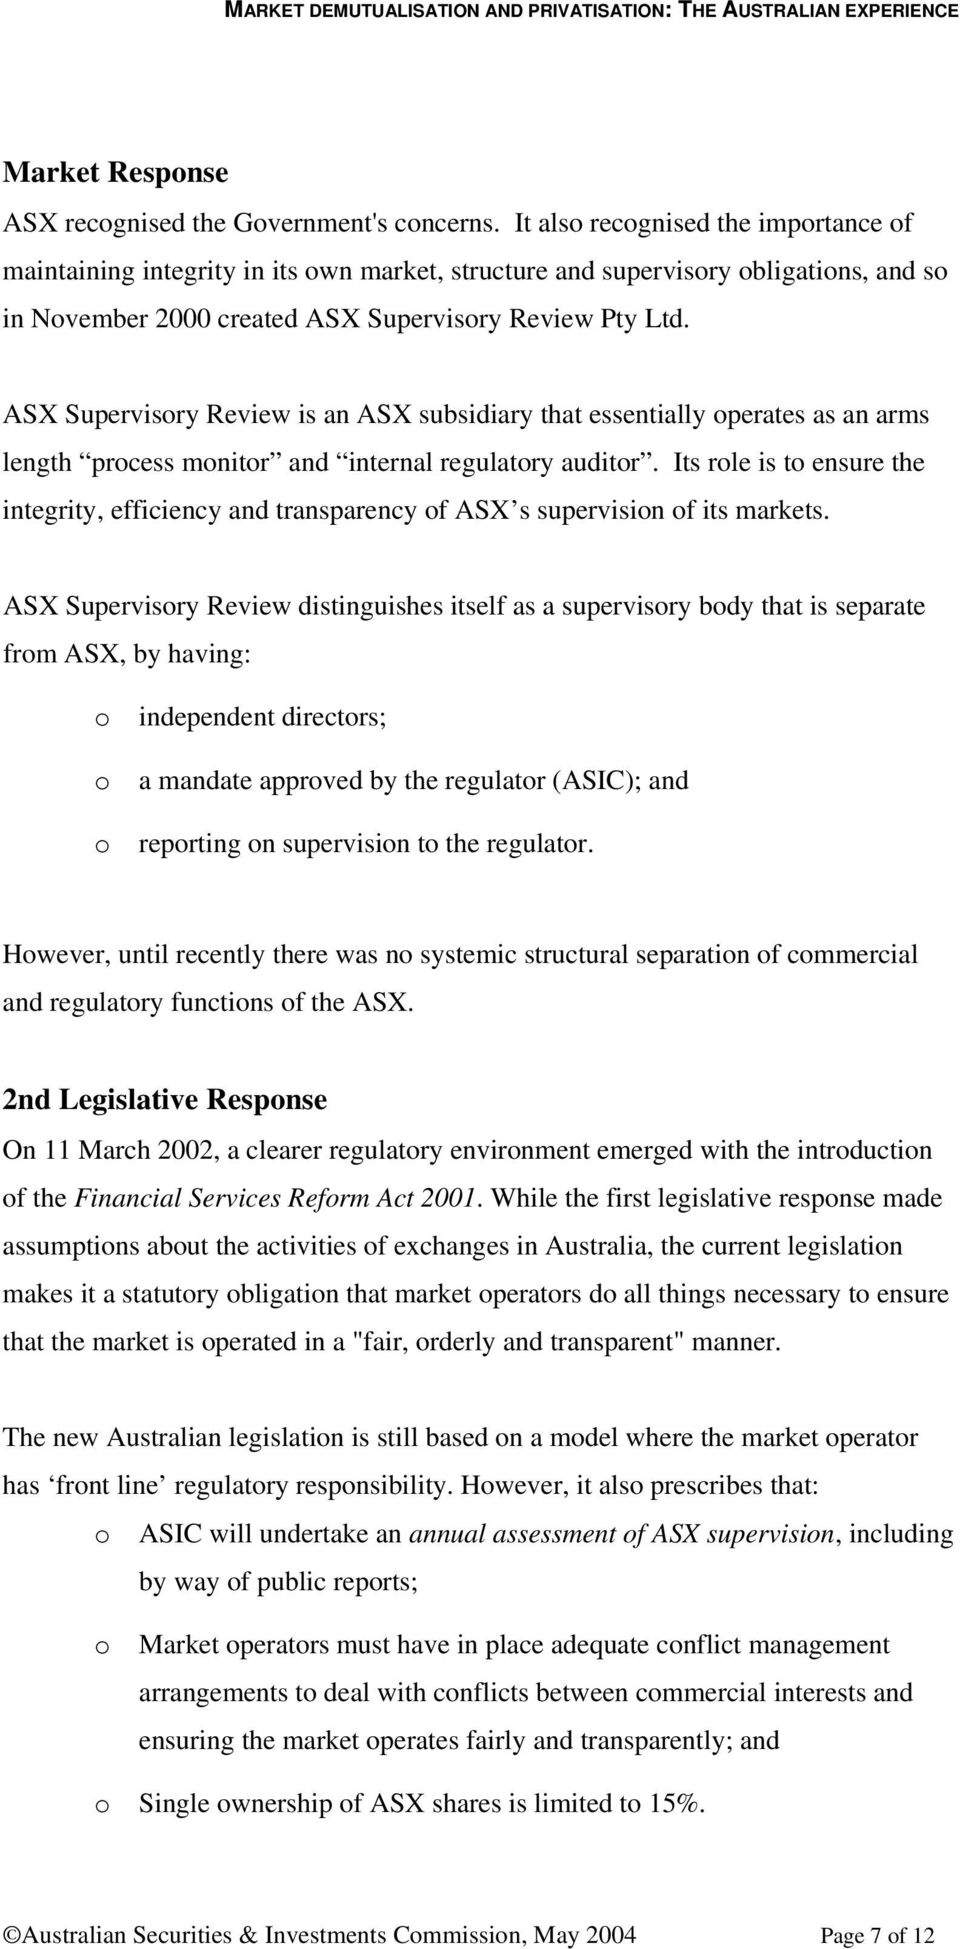 ASX Supervisory Review is an ASX subsidiary that essentially operates as an arms length process monitor and internal regulatory auditor.